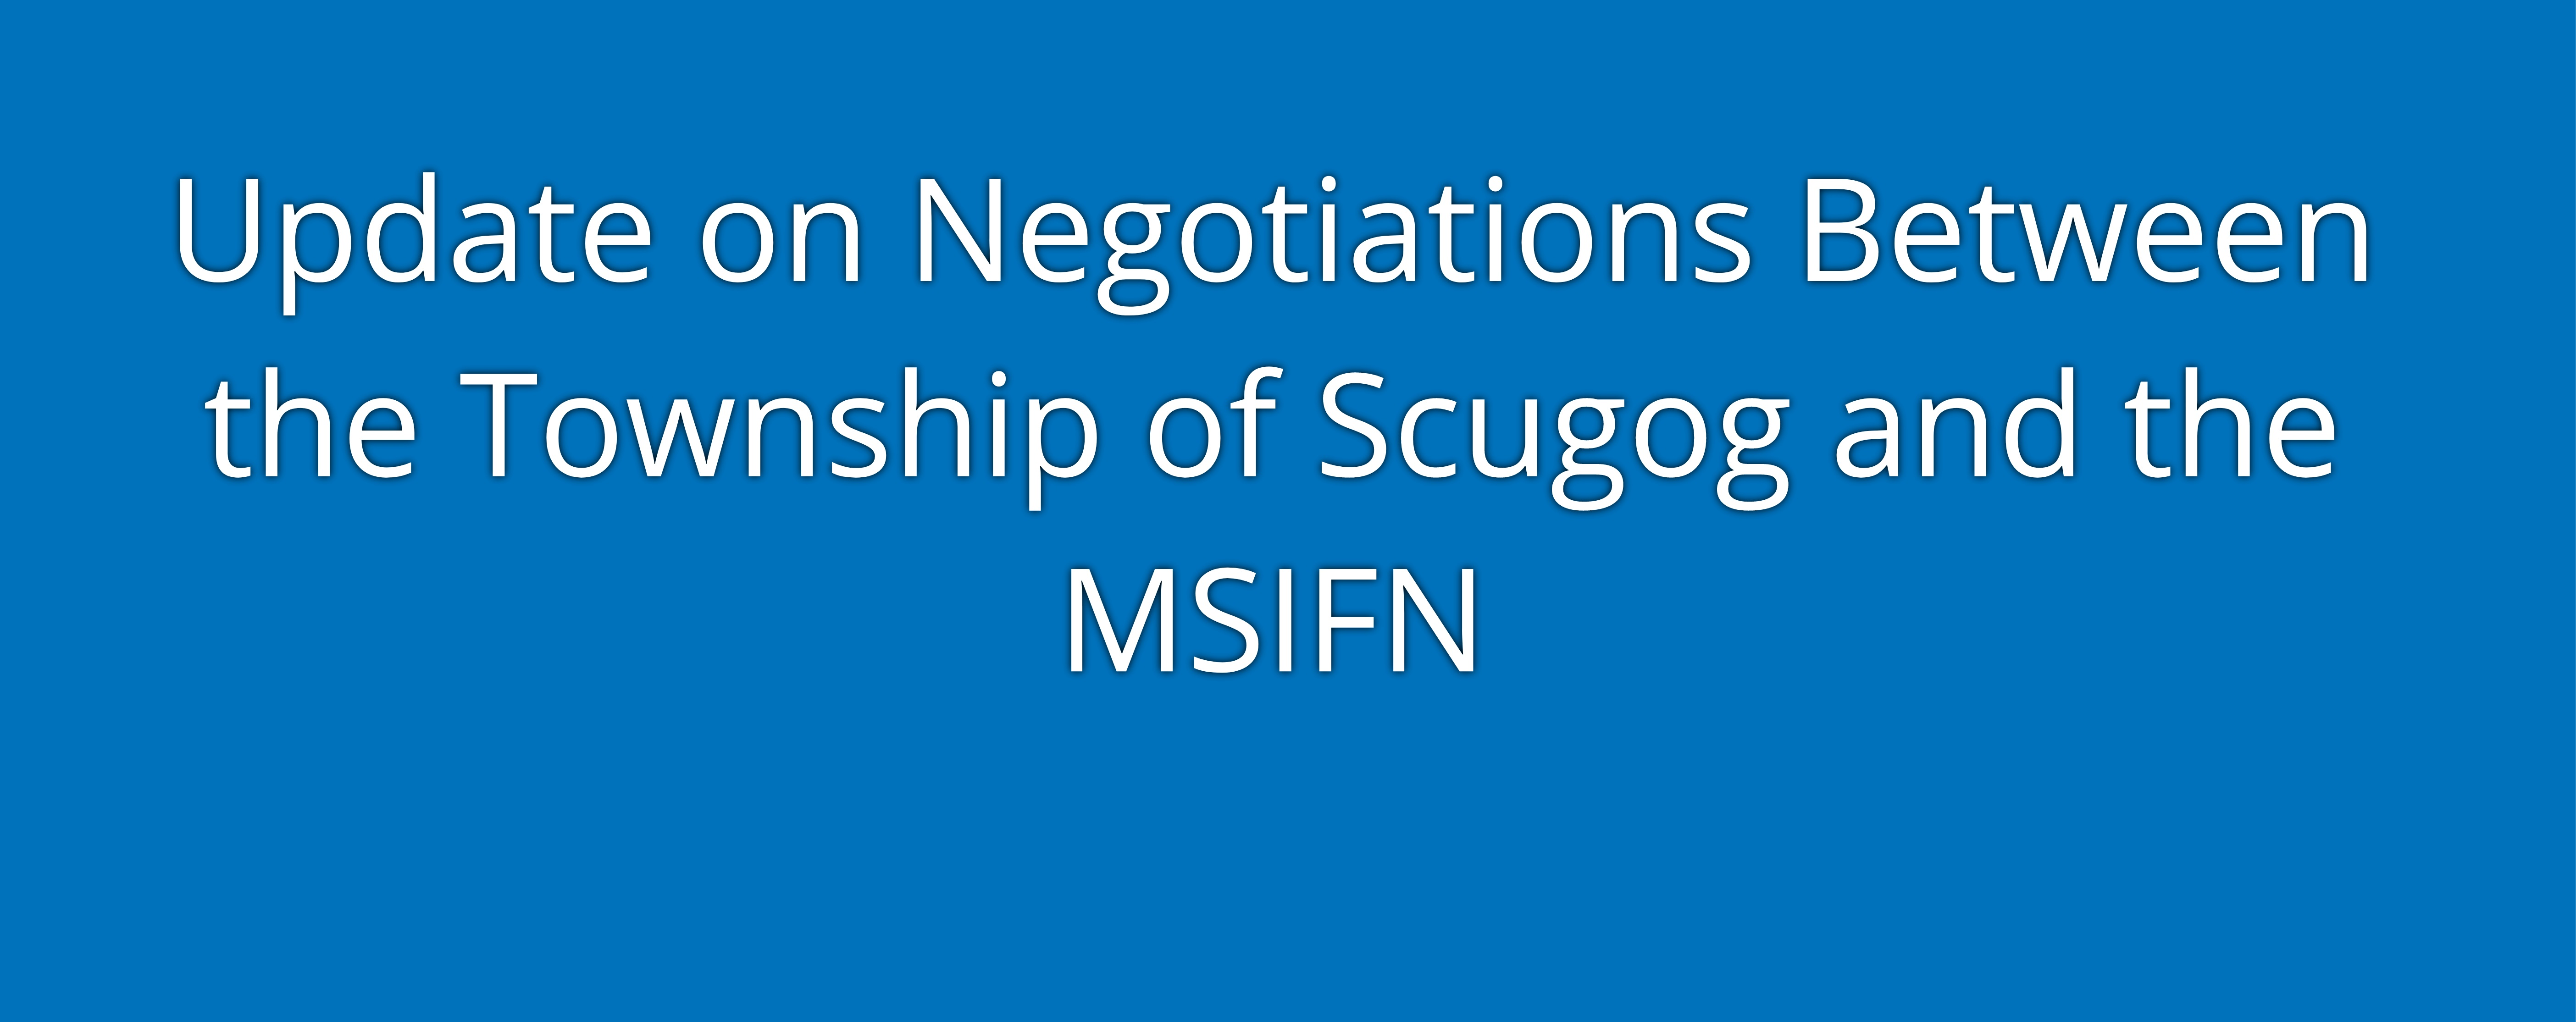 Negotiations between Scugog and MSIFN